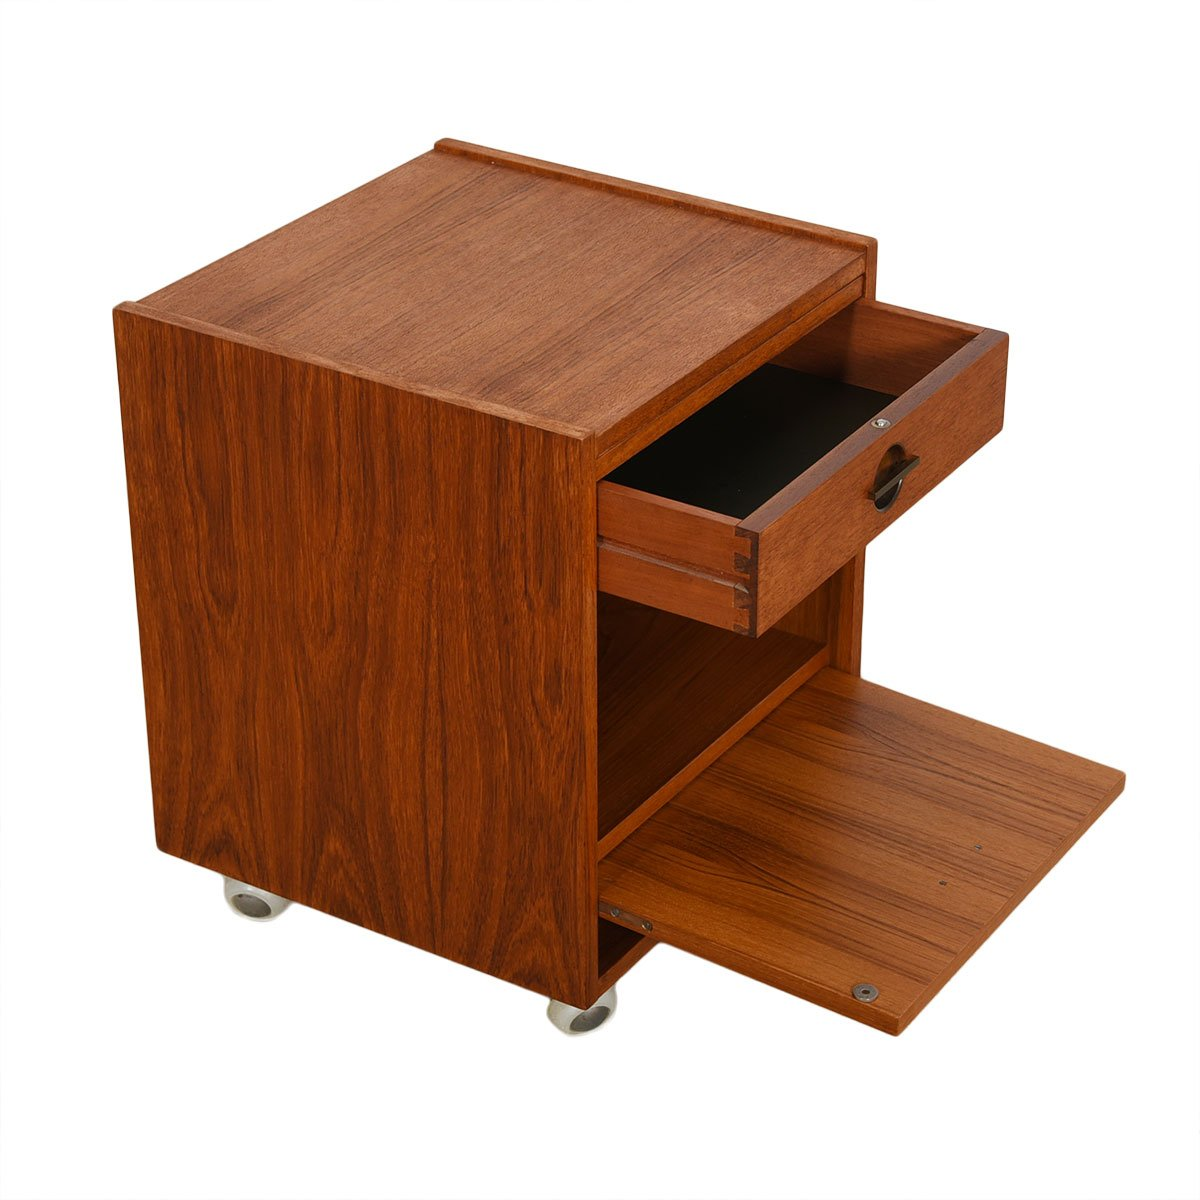 Danish Modern Teak Rolling Nightstand / End Table